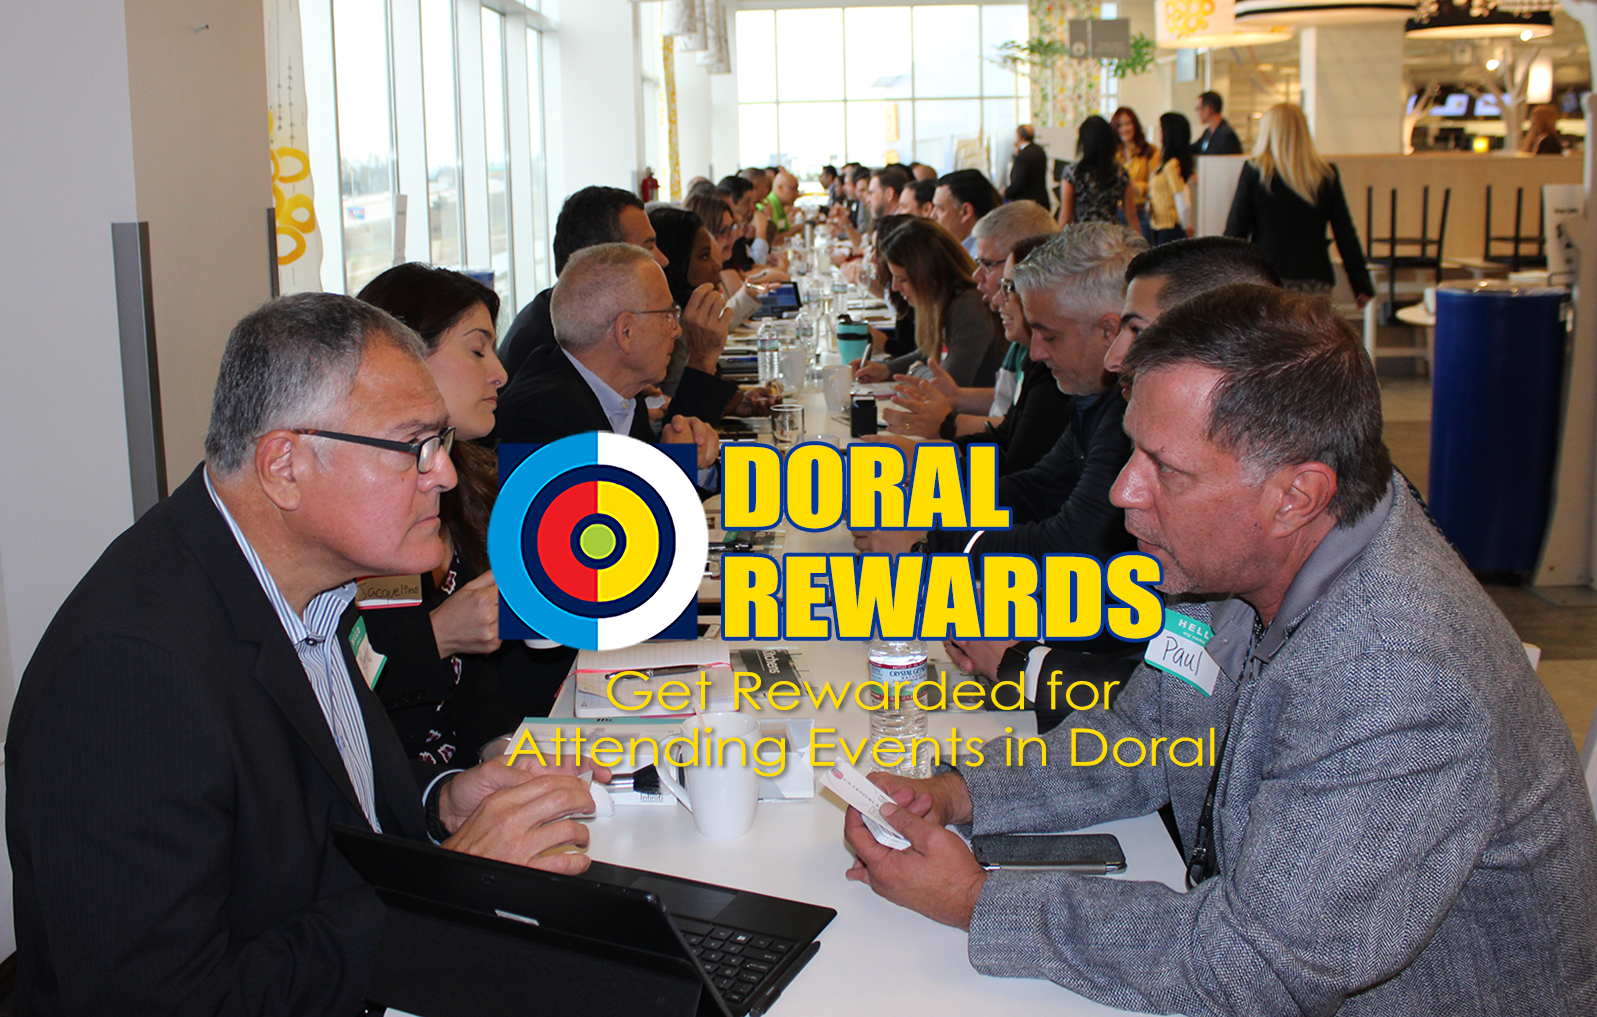 Doral Rewards while Networking at the Doral Chamber of Commerce.